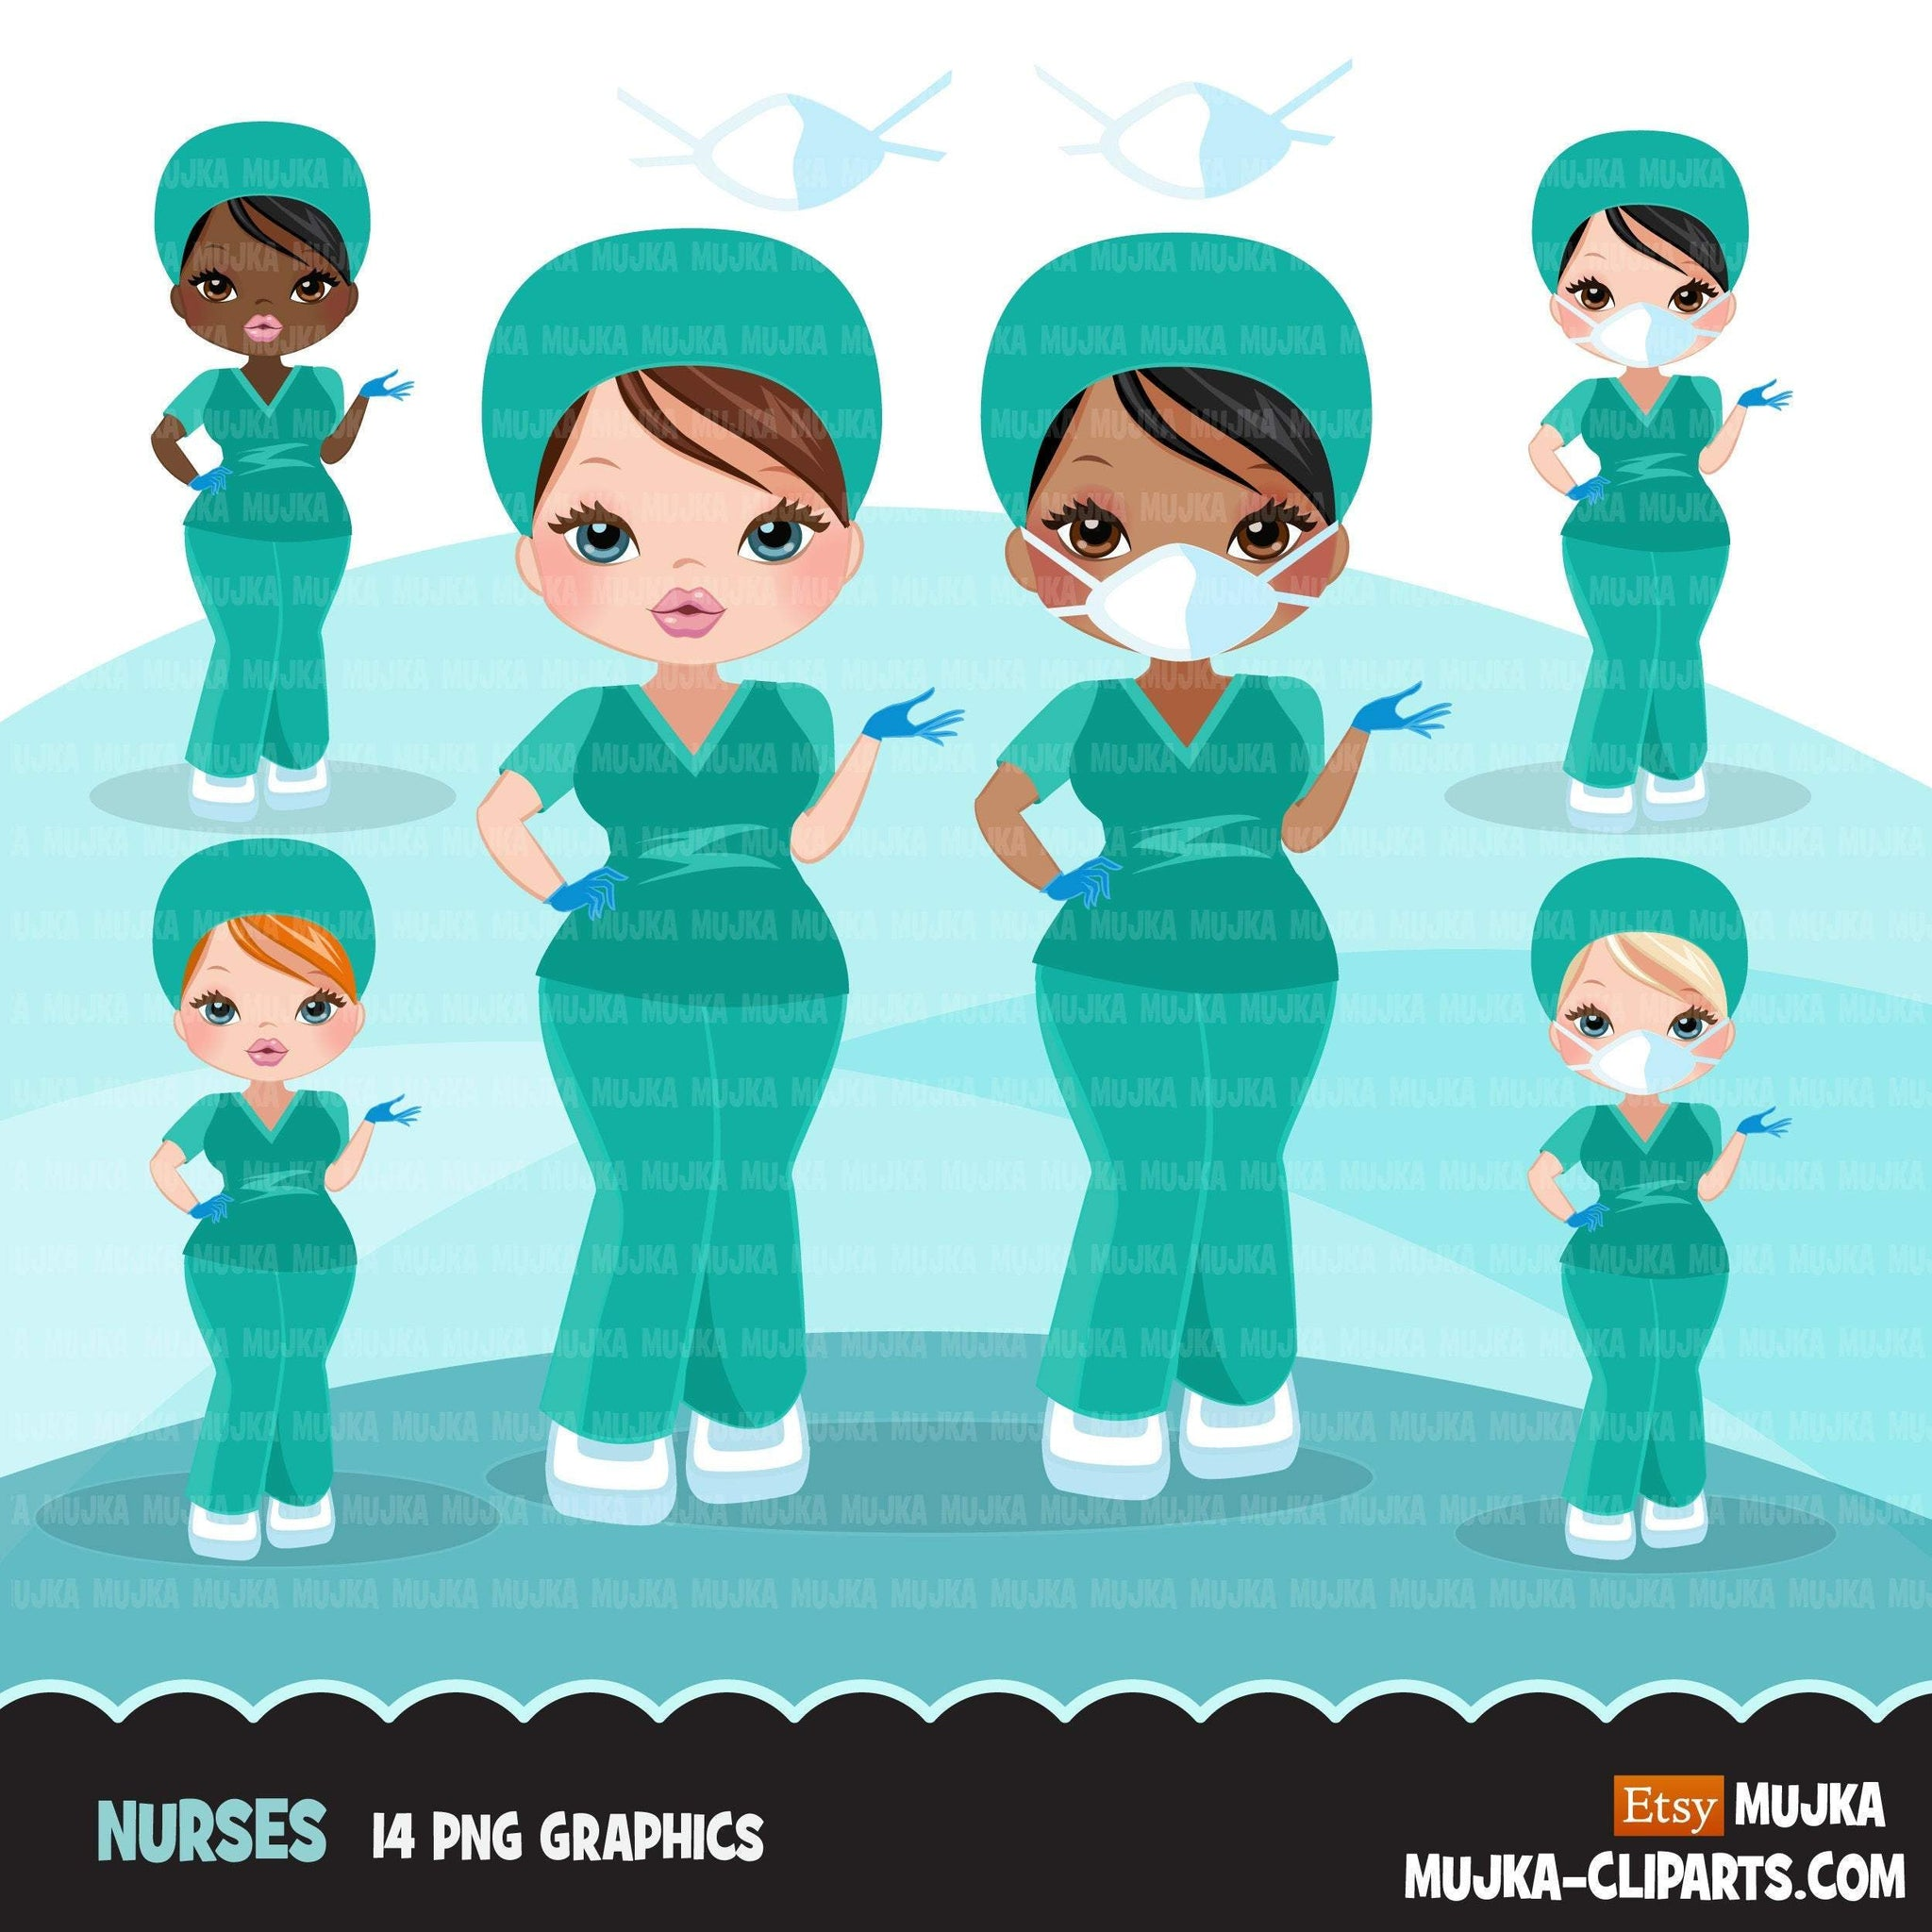 Nurse clipart with mask green scrubs, covid 19 prevention, corona virus, hospital graphics, print and cut PNG digital Designs, Medical clip art